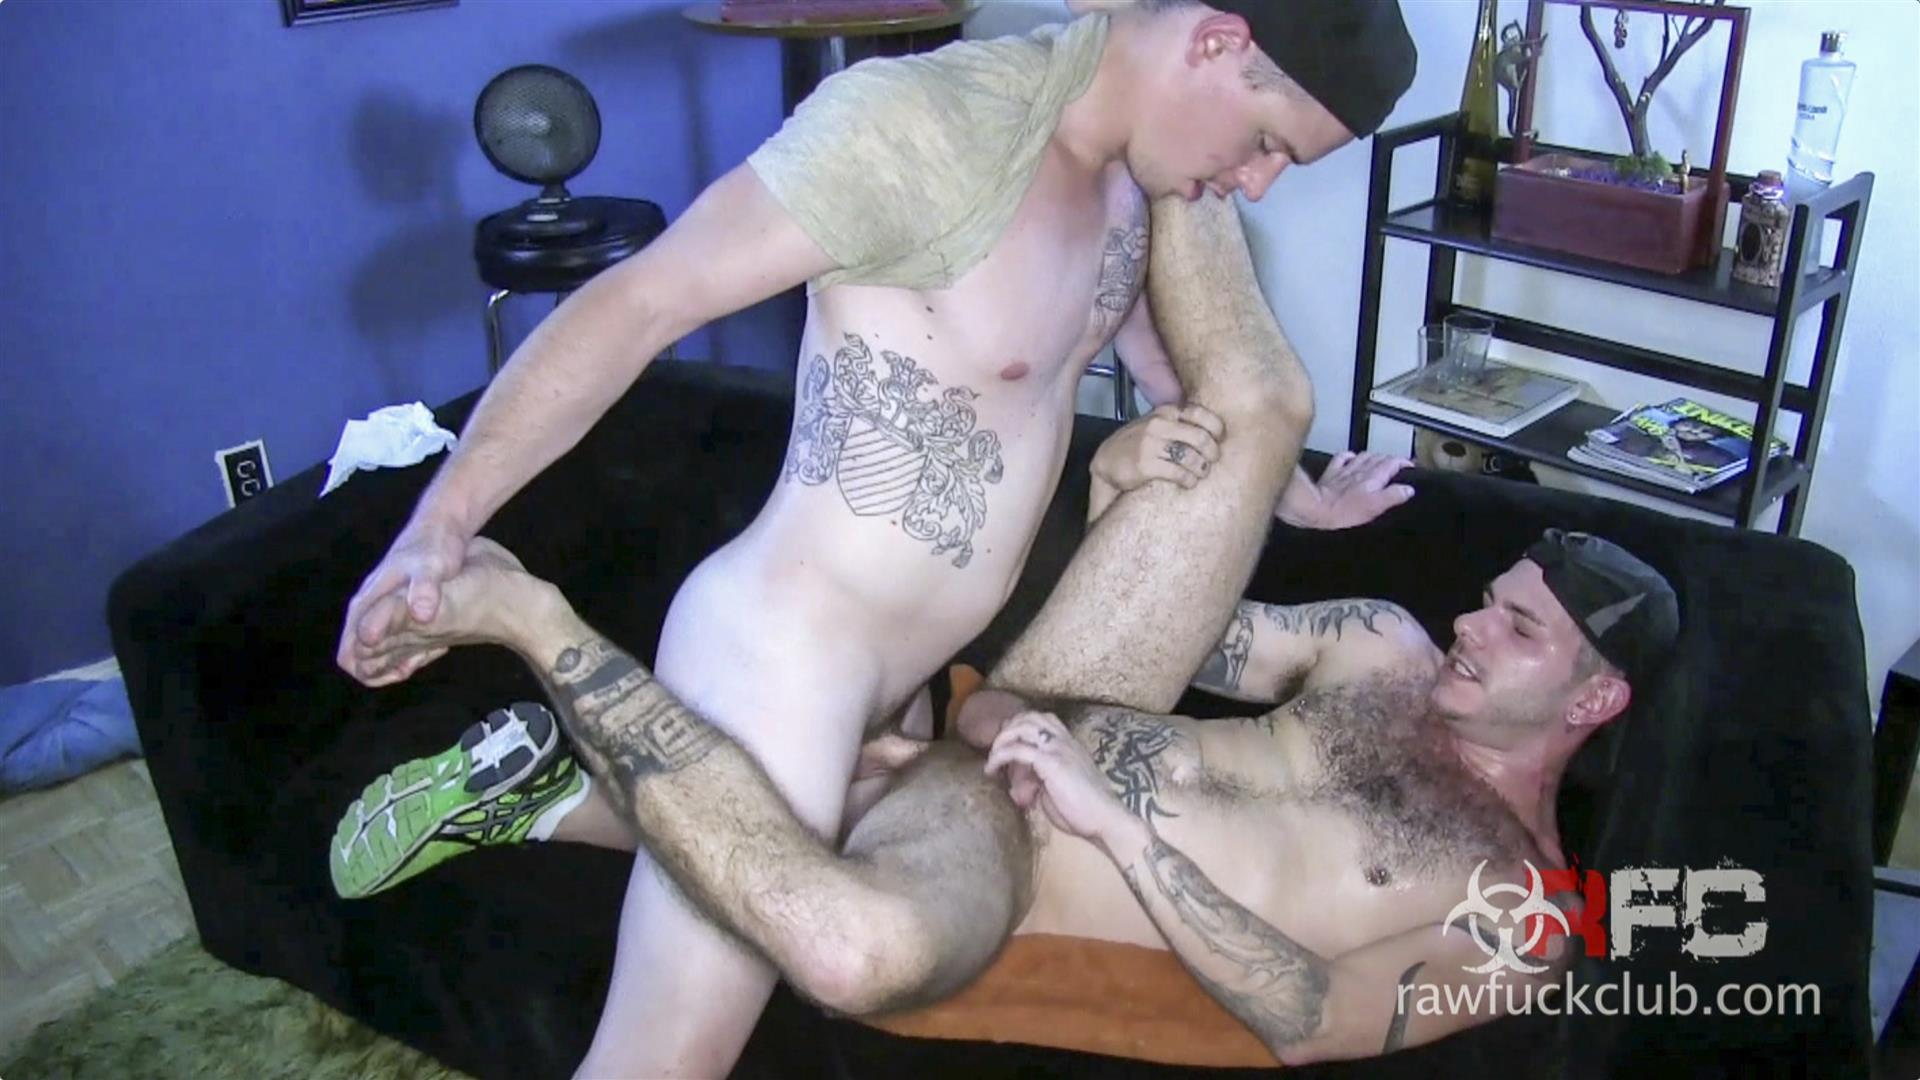 Raw-Fuck-Club-Alessio-Ribiero-Hairy-Ass-Bareback-Fuck-Amateur-Gay-Porn-12 Picking Up A Drunk Trick At The Club And Fucking Him Raw